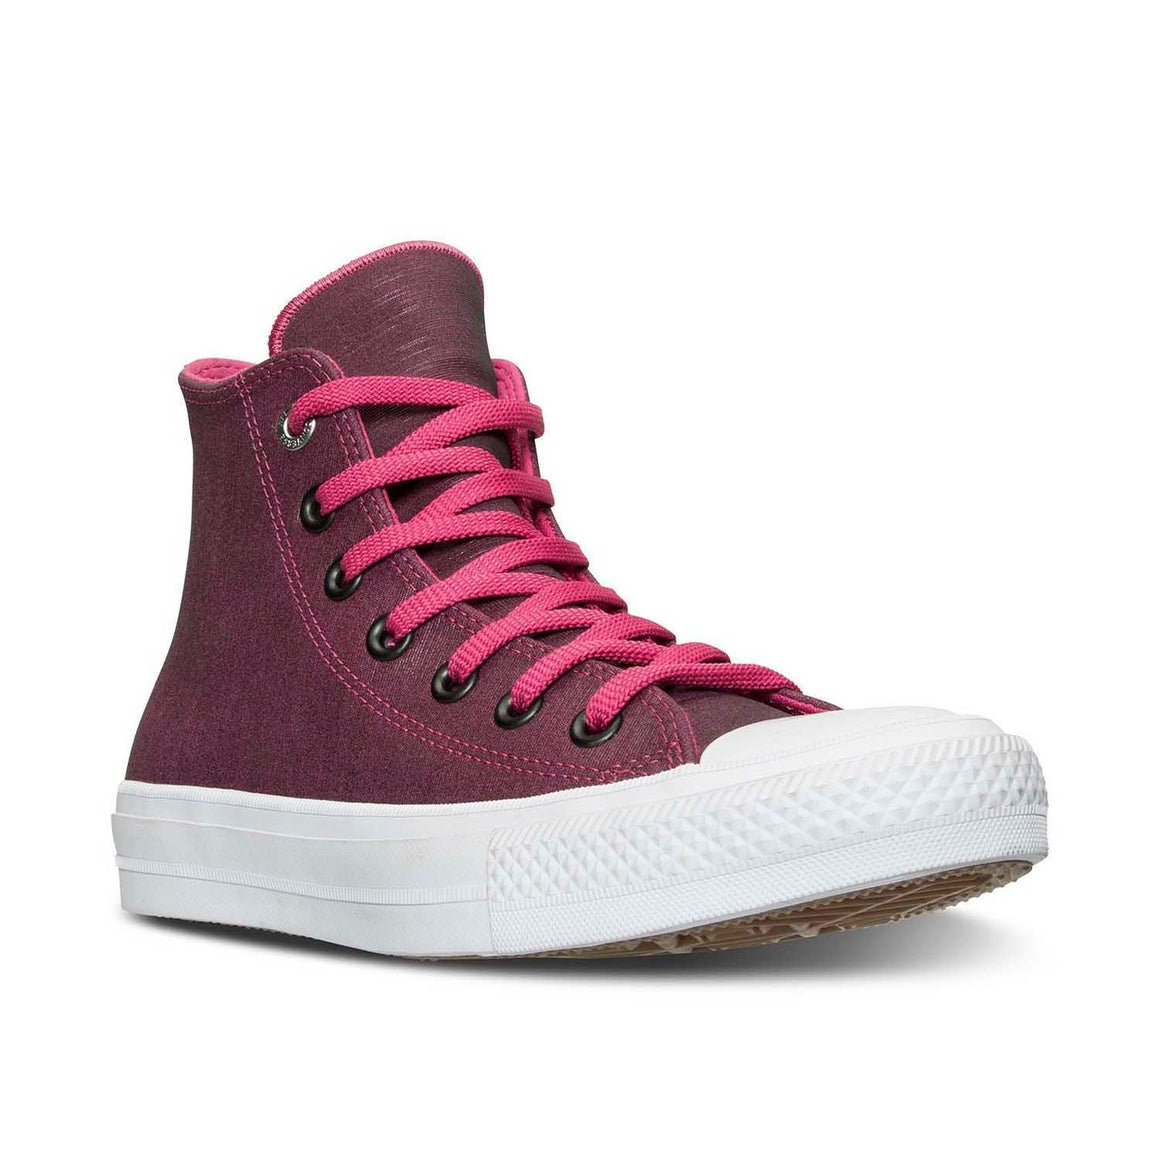 ff0cdc4ff43 CONVERSE CHUCK TAYLOR ALL STAR TWILIGHT COURT ROSEGOLD